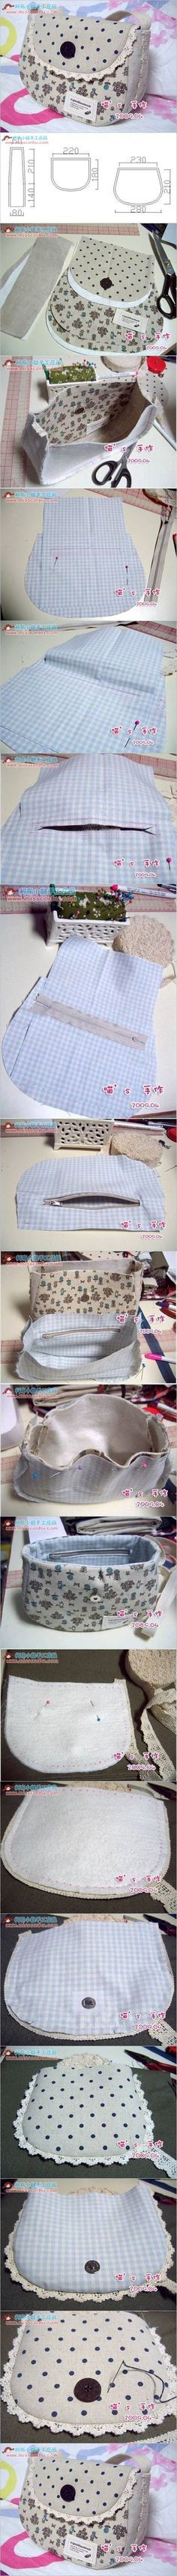 DIY Comment coudre un été Sac à main simple